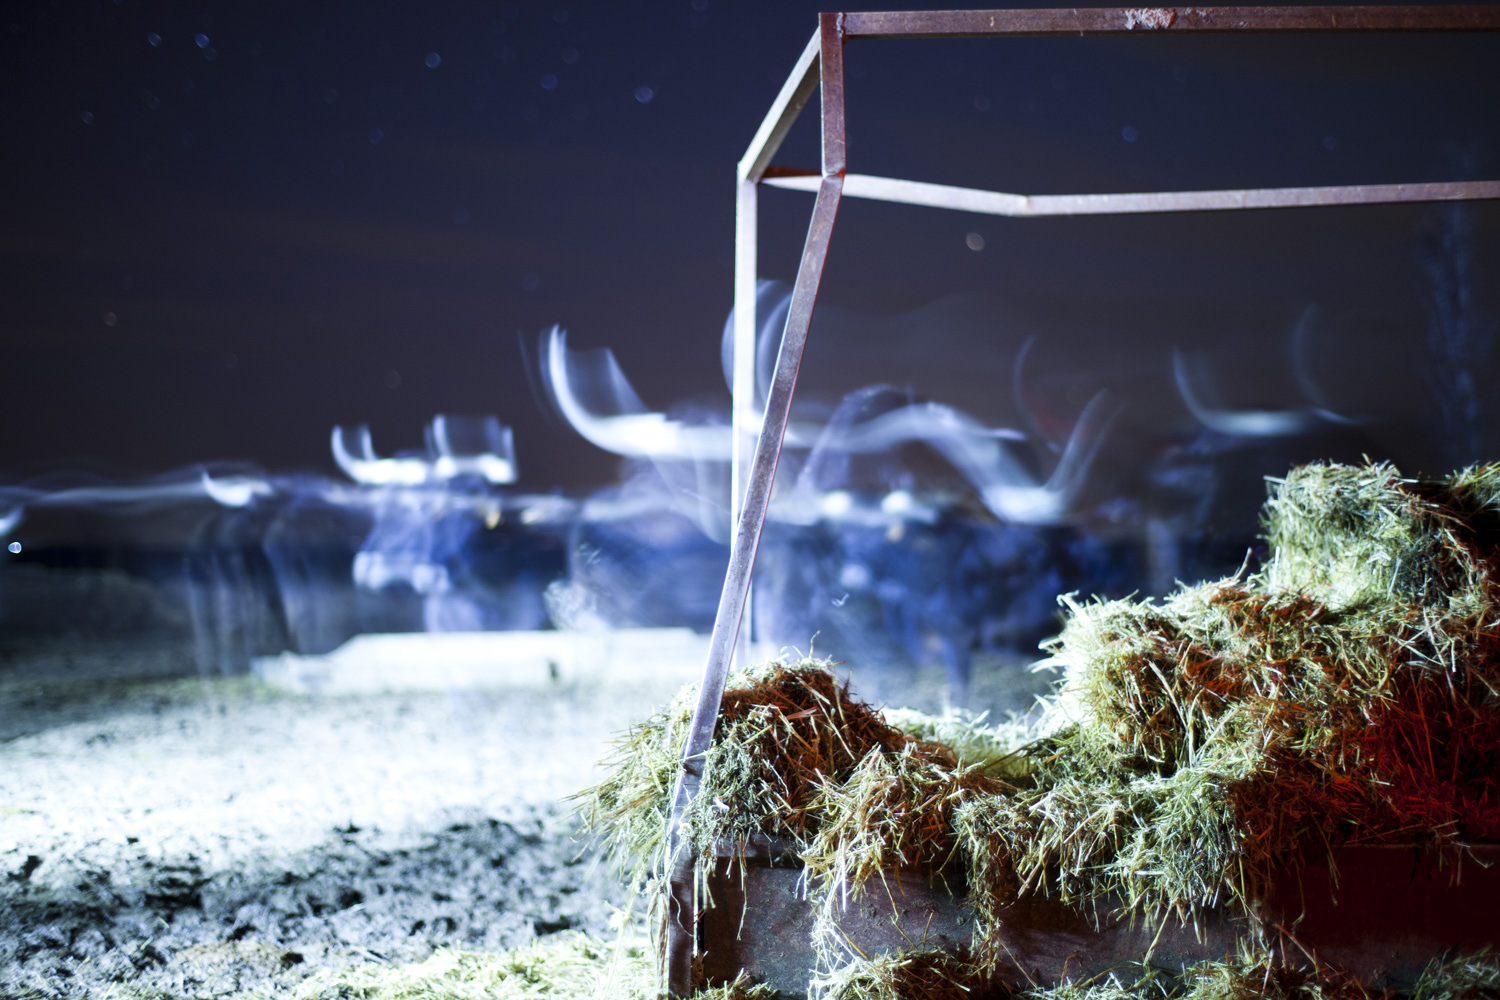 Bulls in the night photograph by Victor Hugo Martin